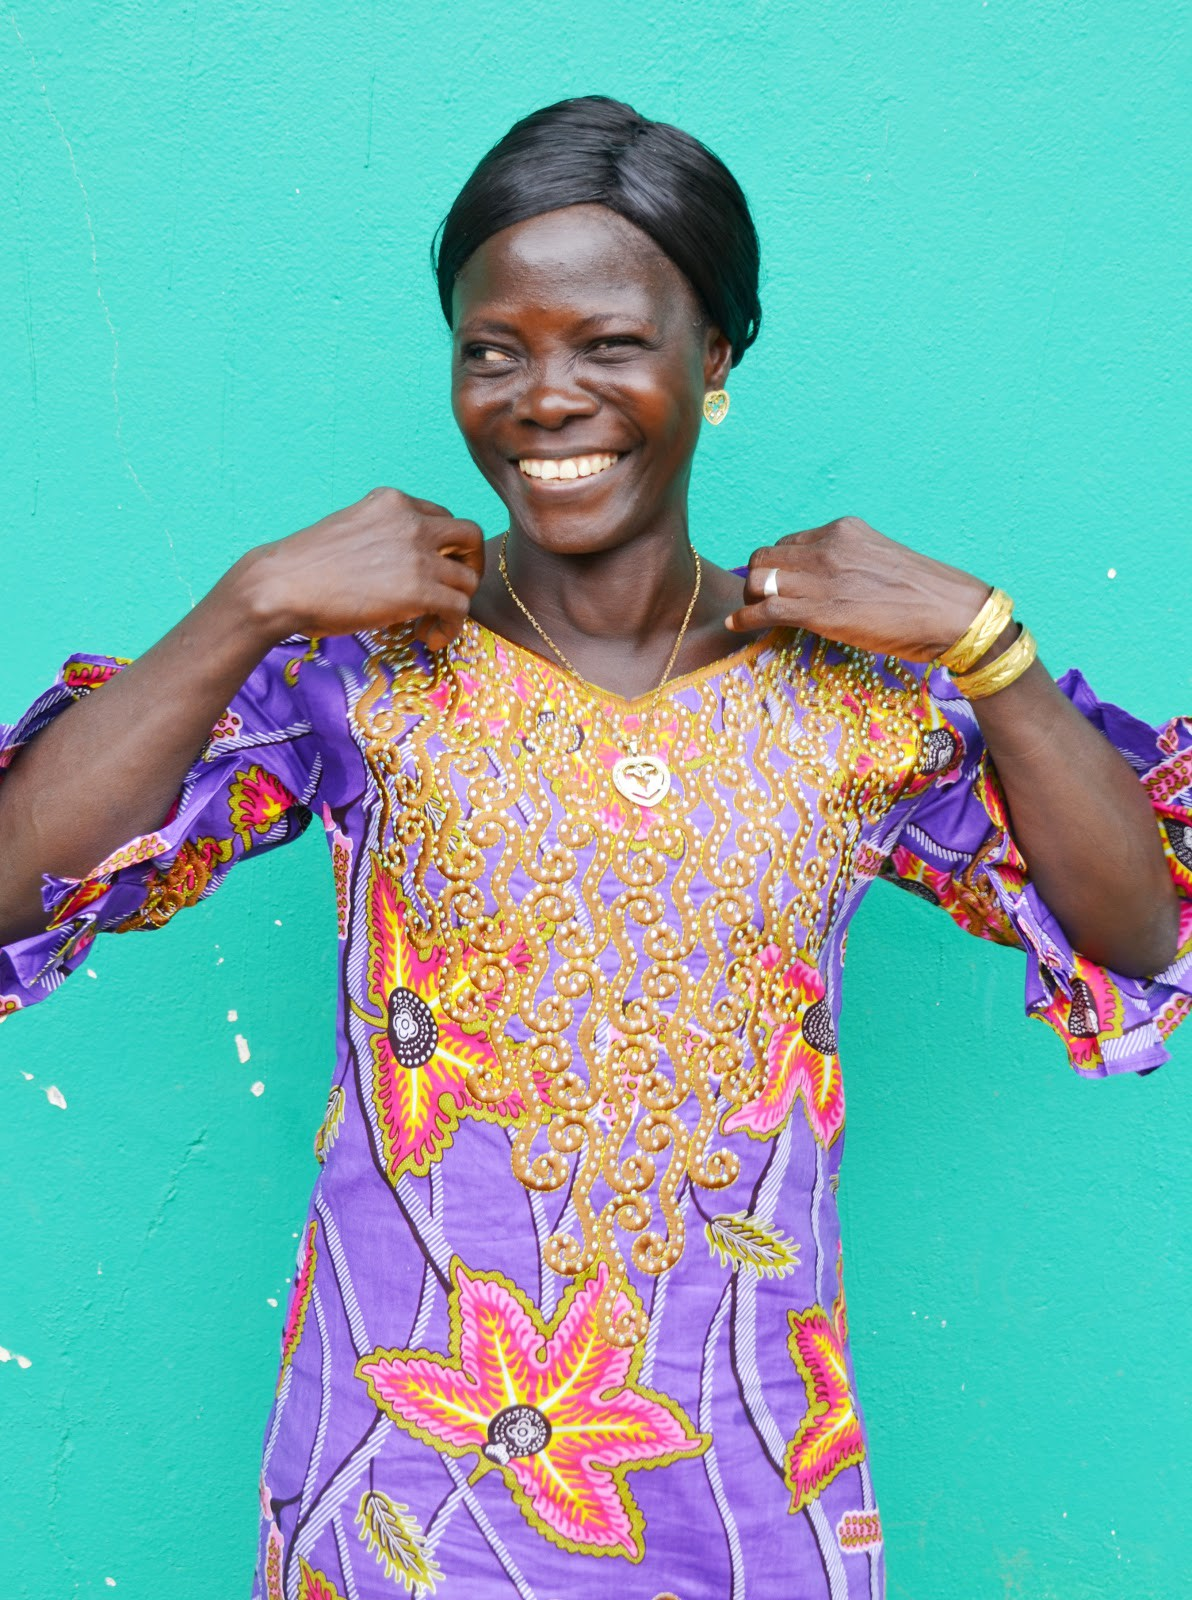 Ma-Watta Dukuly is a USAID-supported community development facilitator who is providing psychosocial support in Doe Community, Liberia for those who were impacted by the Ebola crisis. / Jessica Benton Cooney, USAID